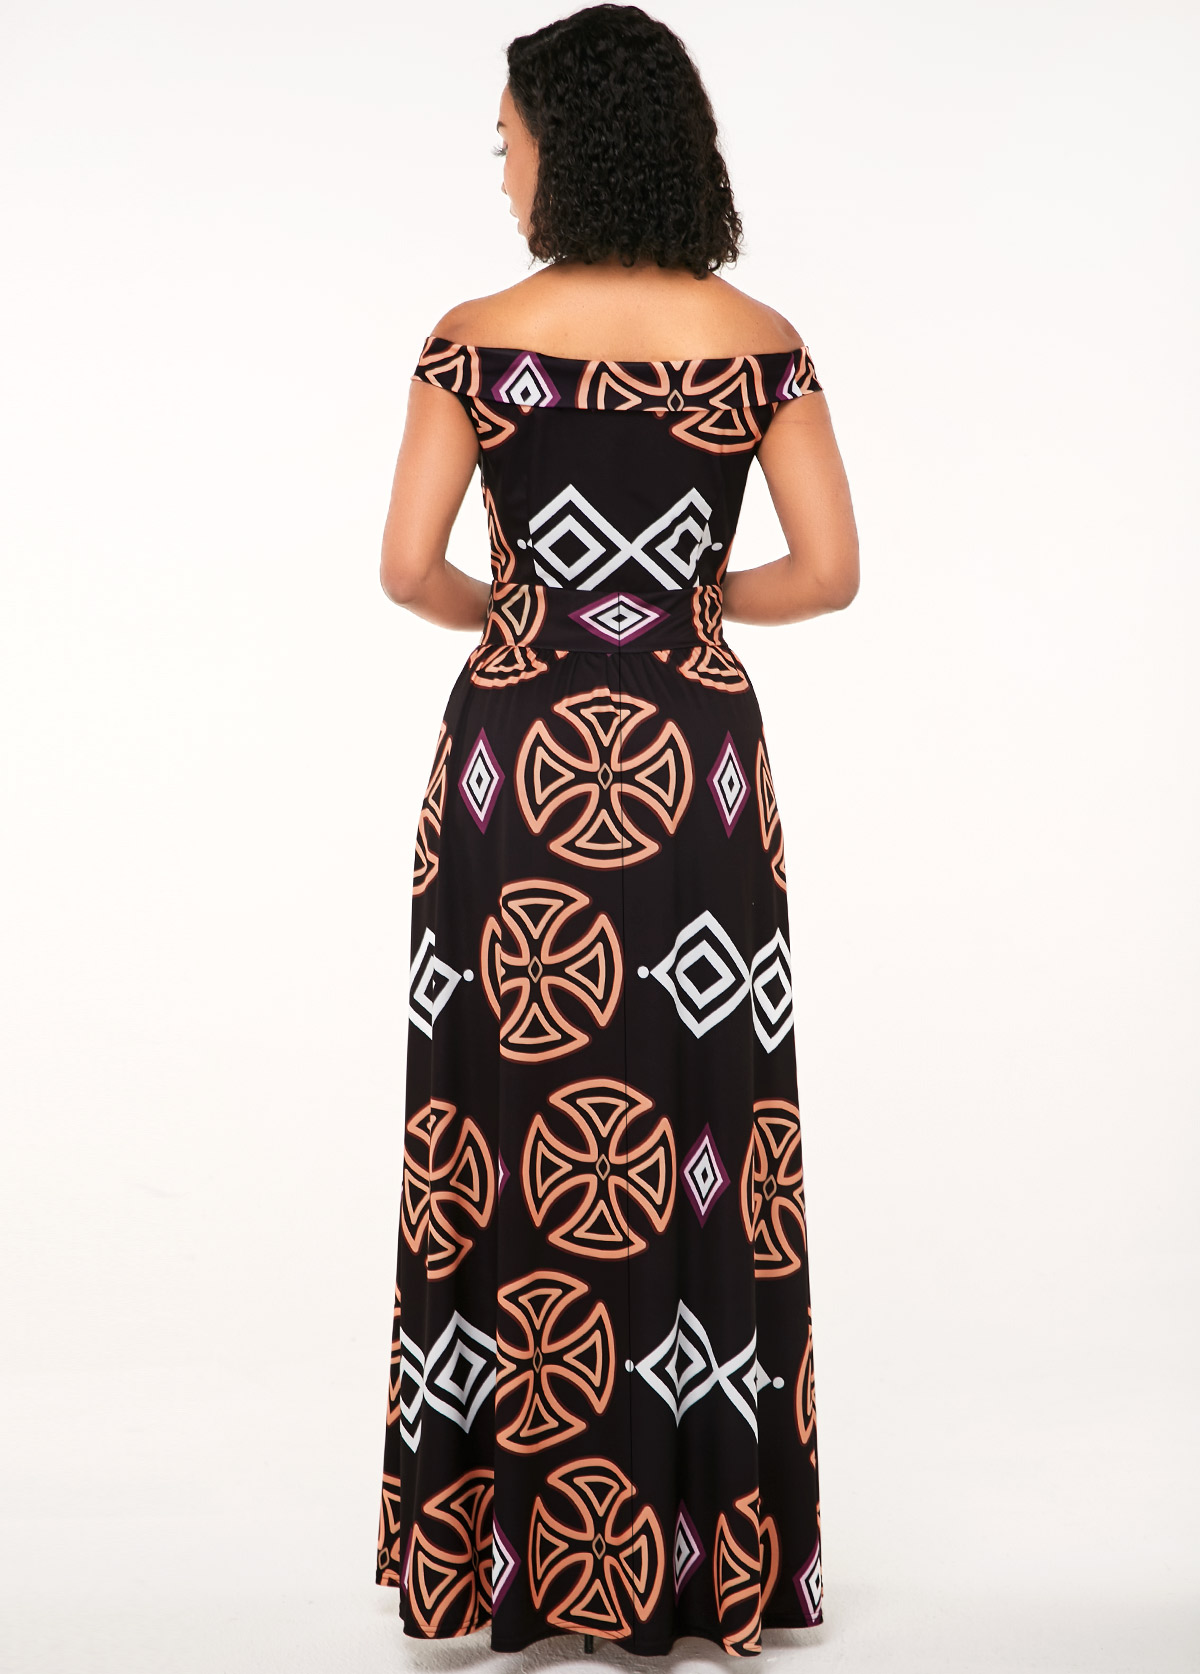 Zipper Closure African Print Off the Shoulder Dress